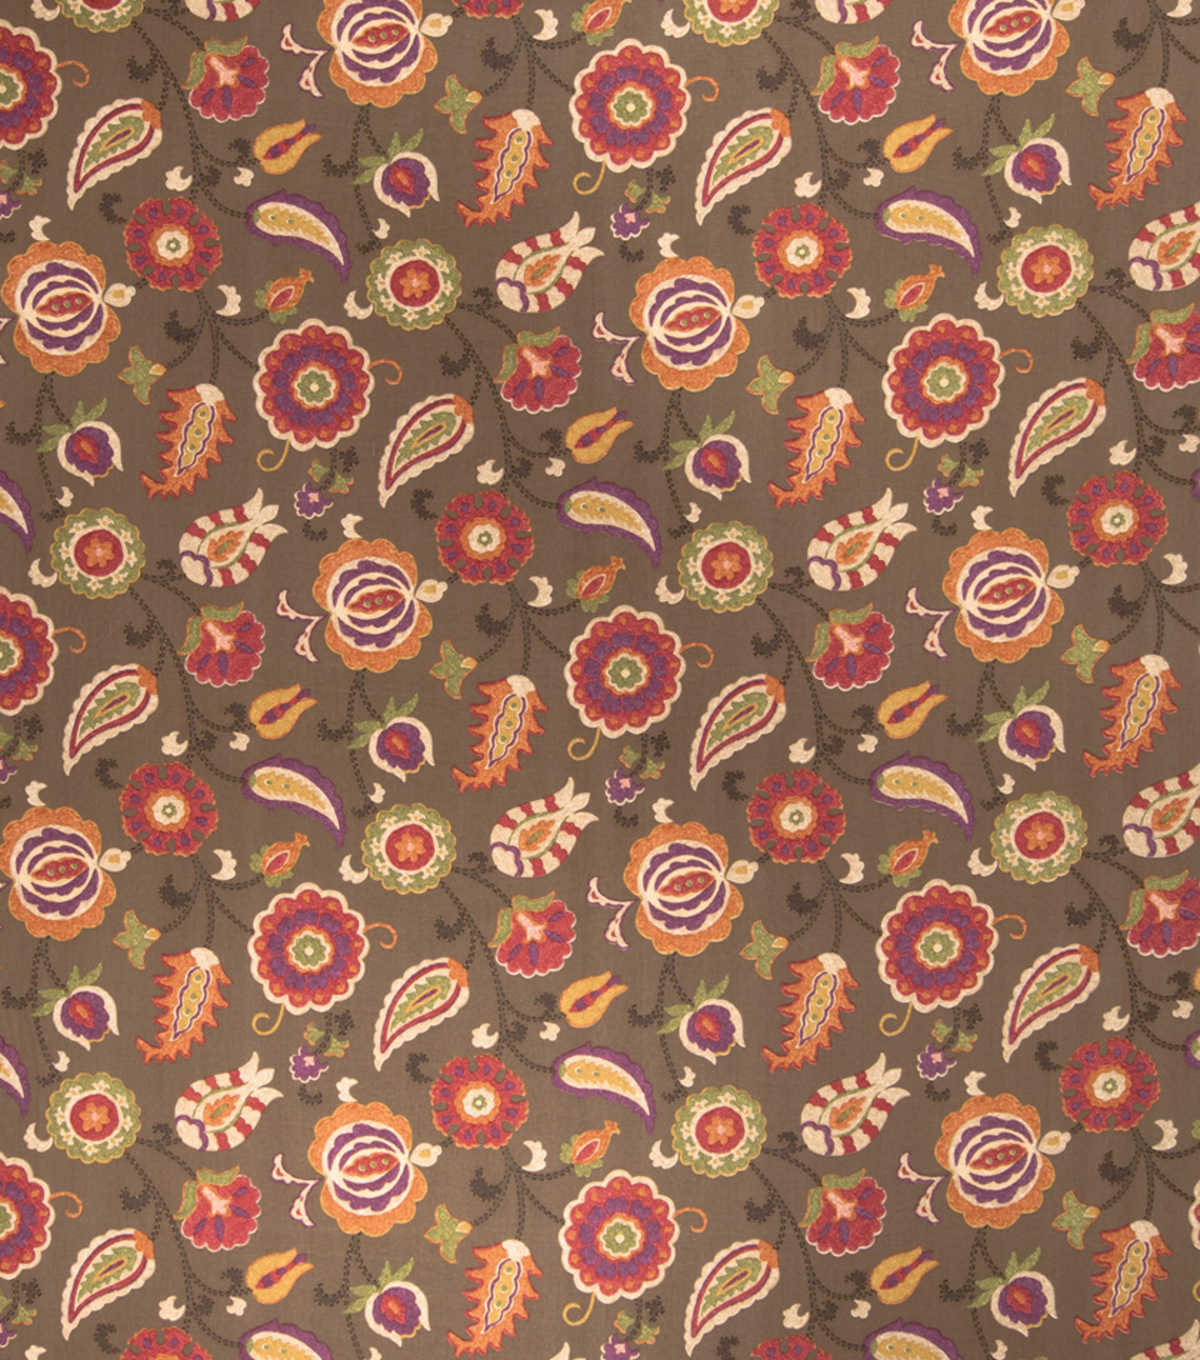 Home Decor 8\u0022x8\u0022 Fabric Swatch-Upholstery Fabric Eaton Square Usher Nutmeg